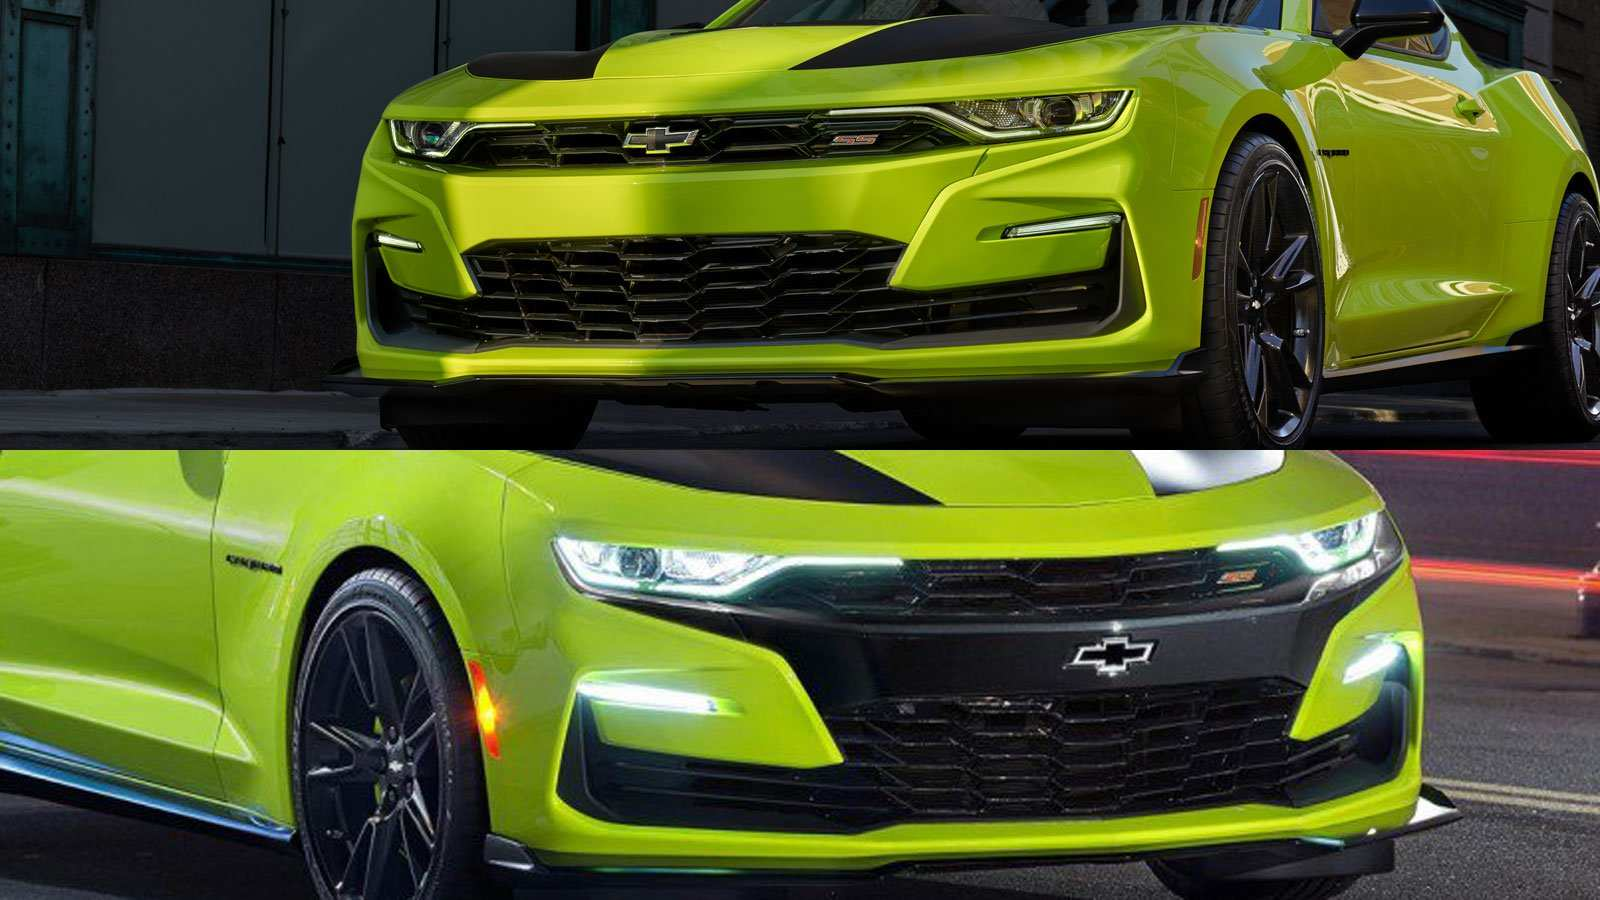 94 A 2020 The All Chevy Camaro Price